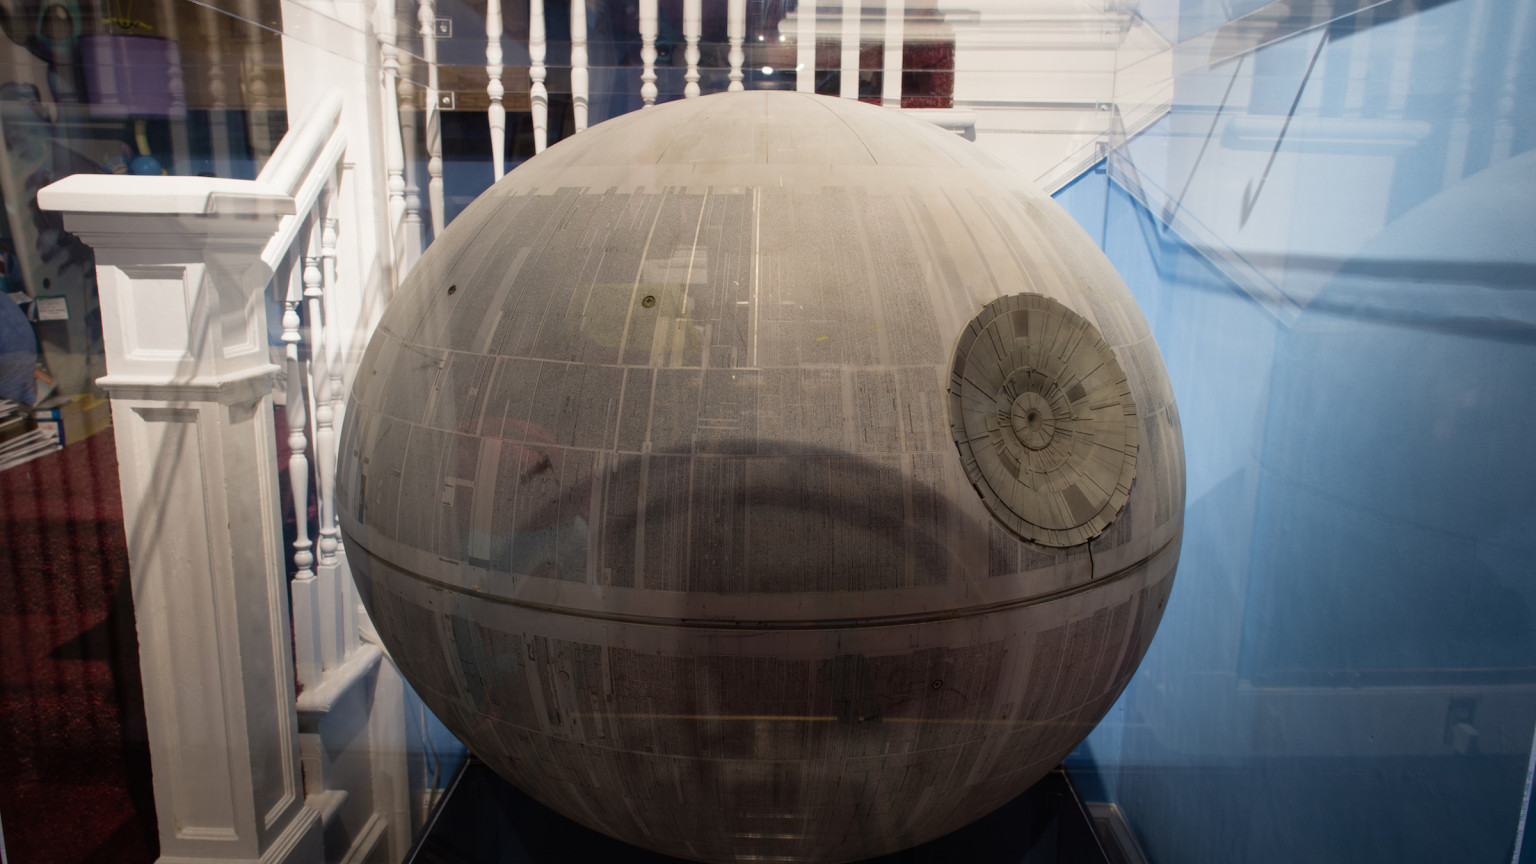 Death Star Model - Close-up in Display Case